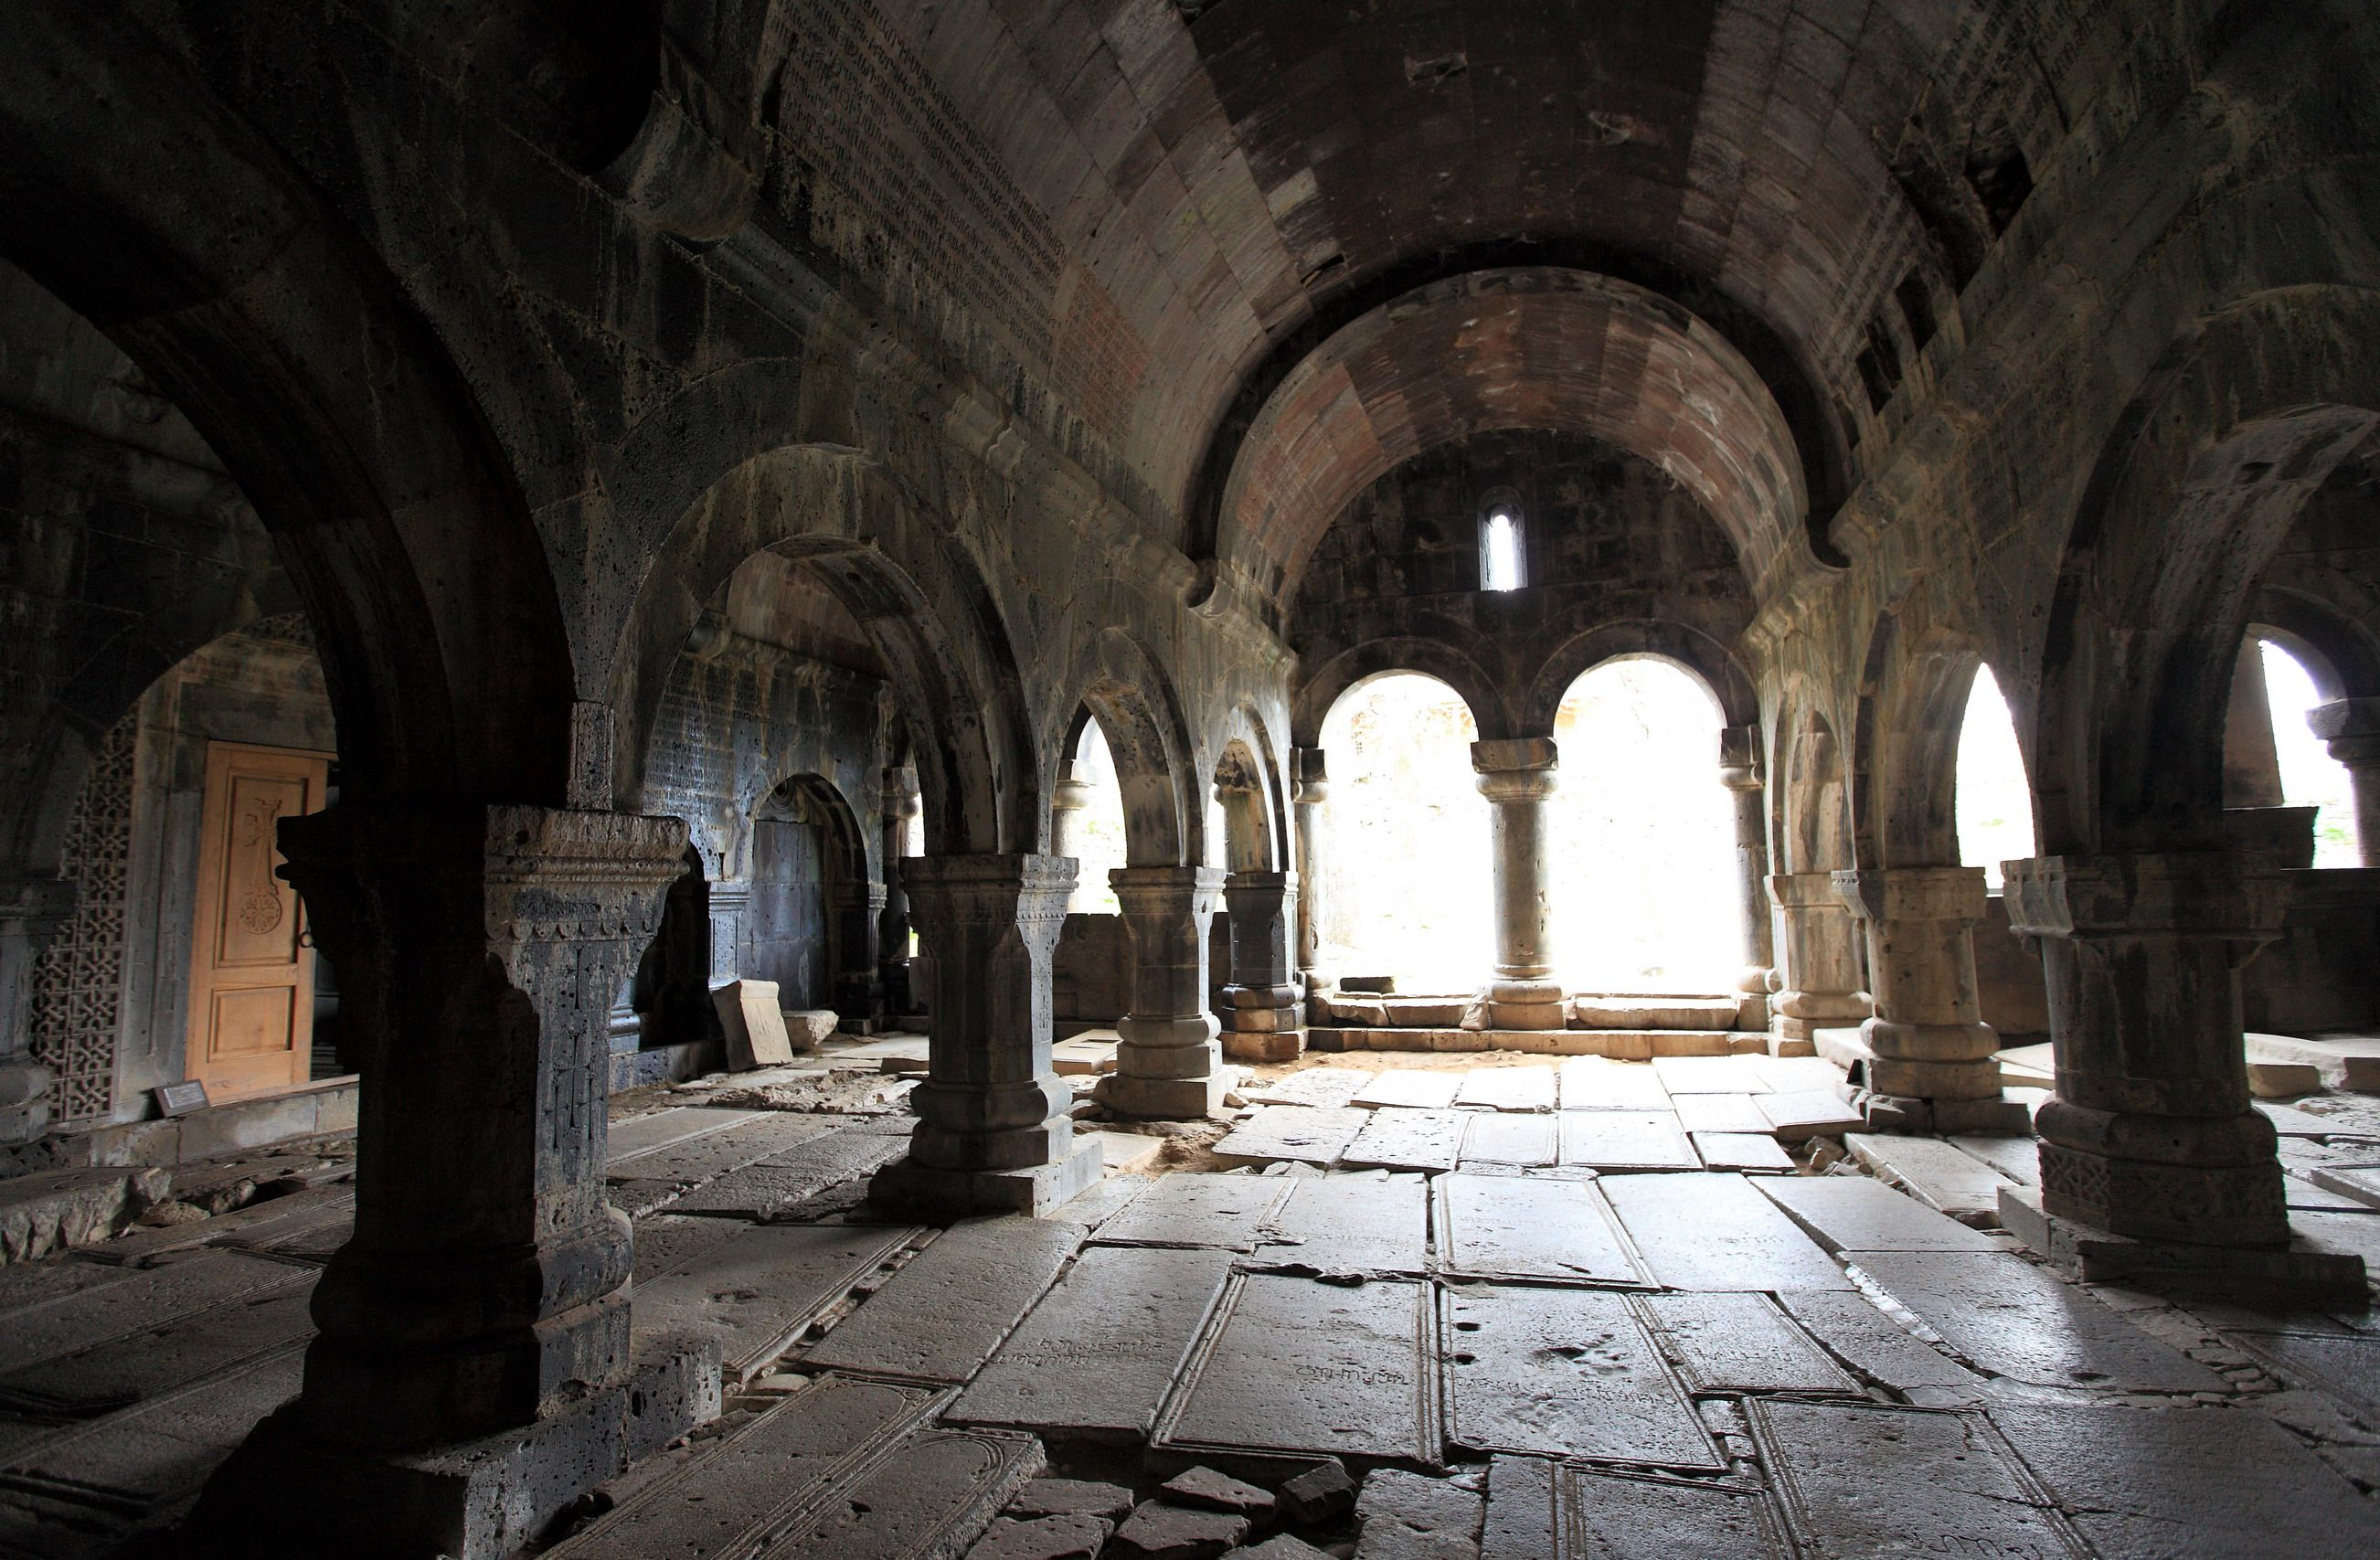 medieval cloister google search m4m research